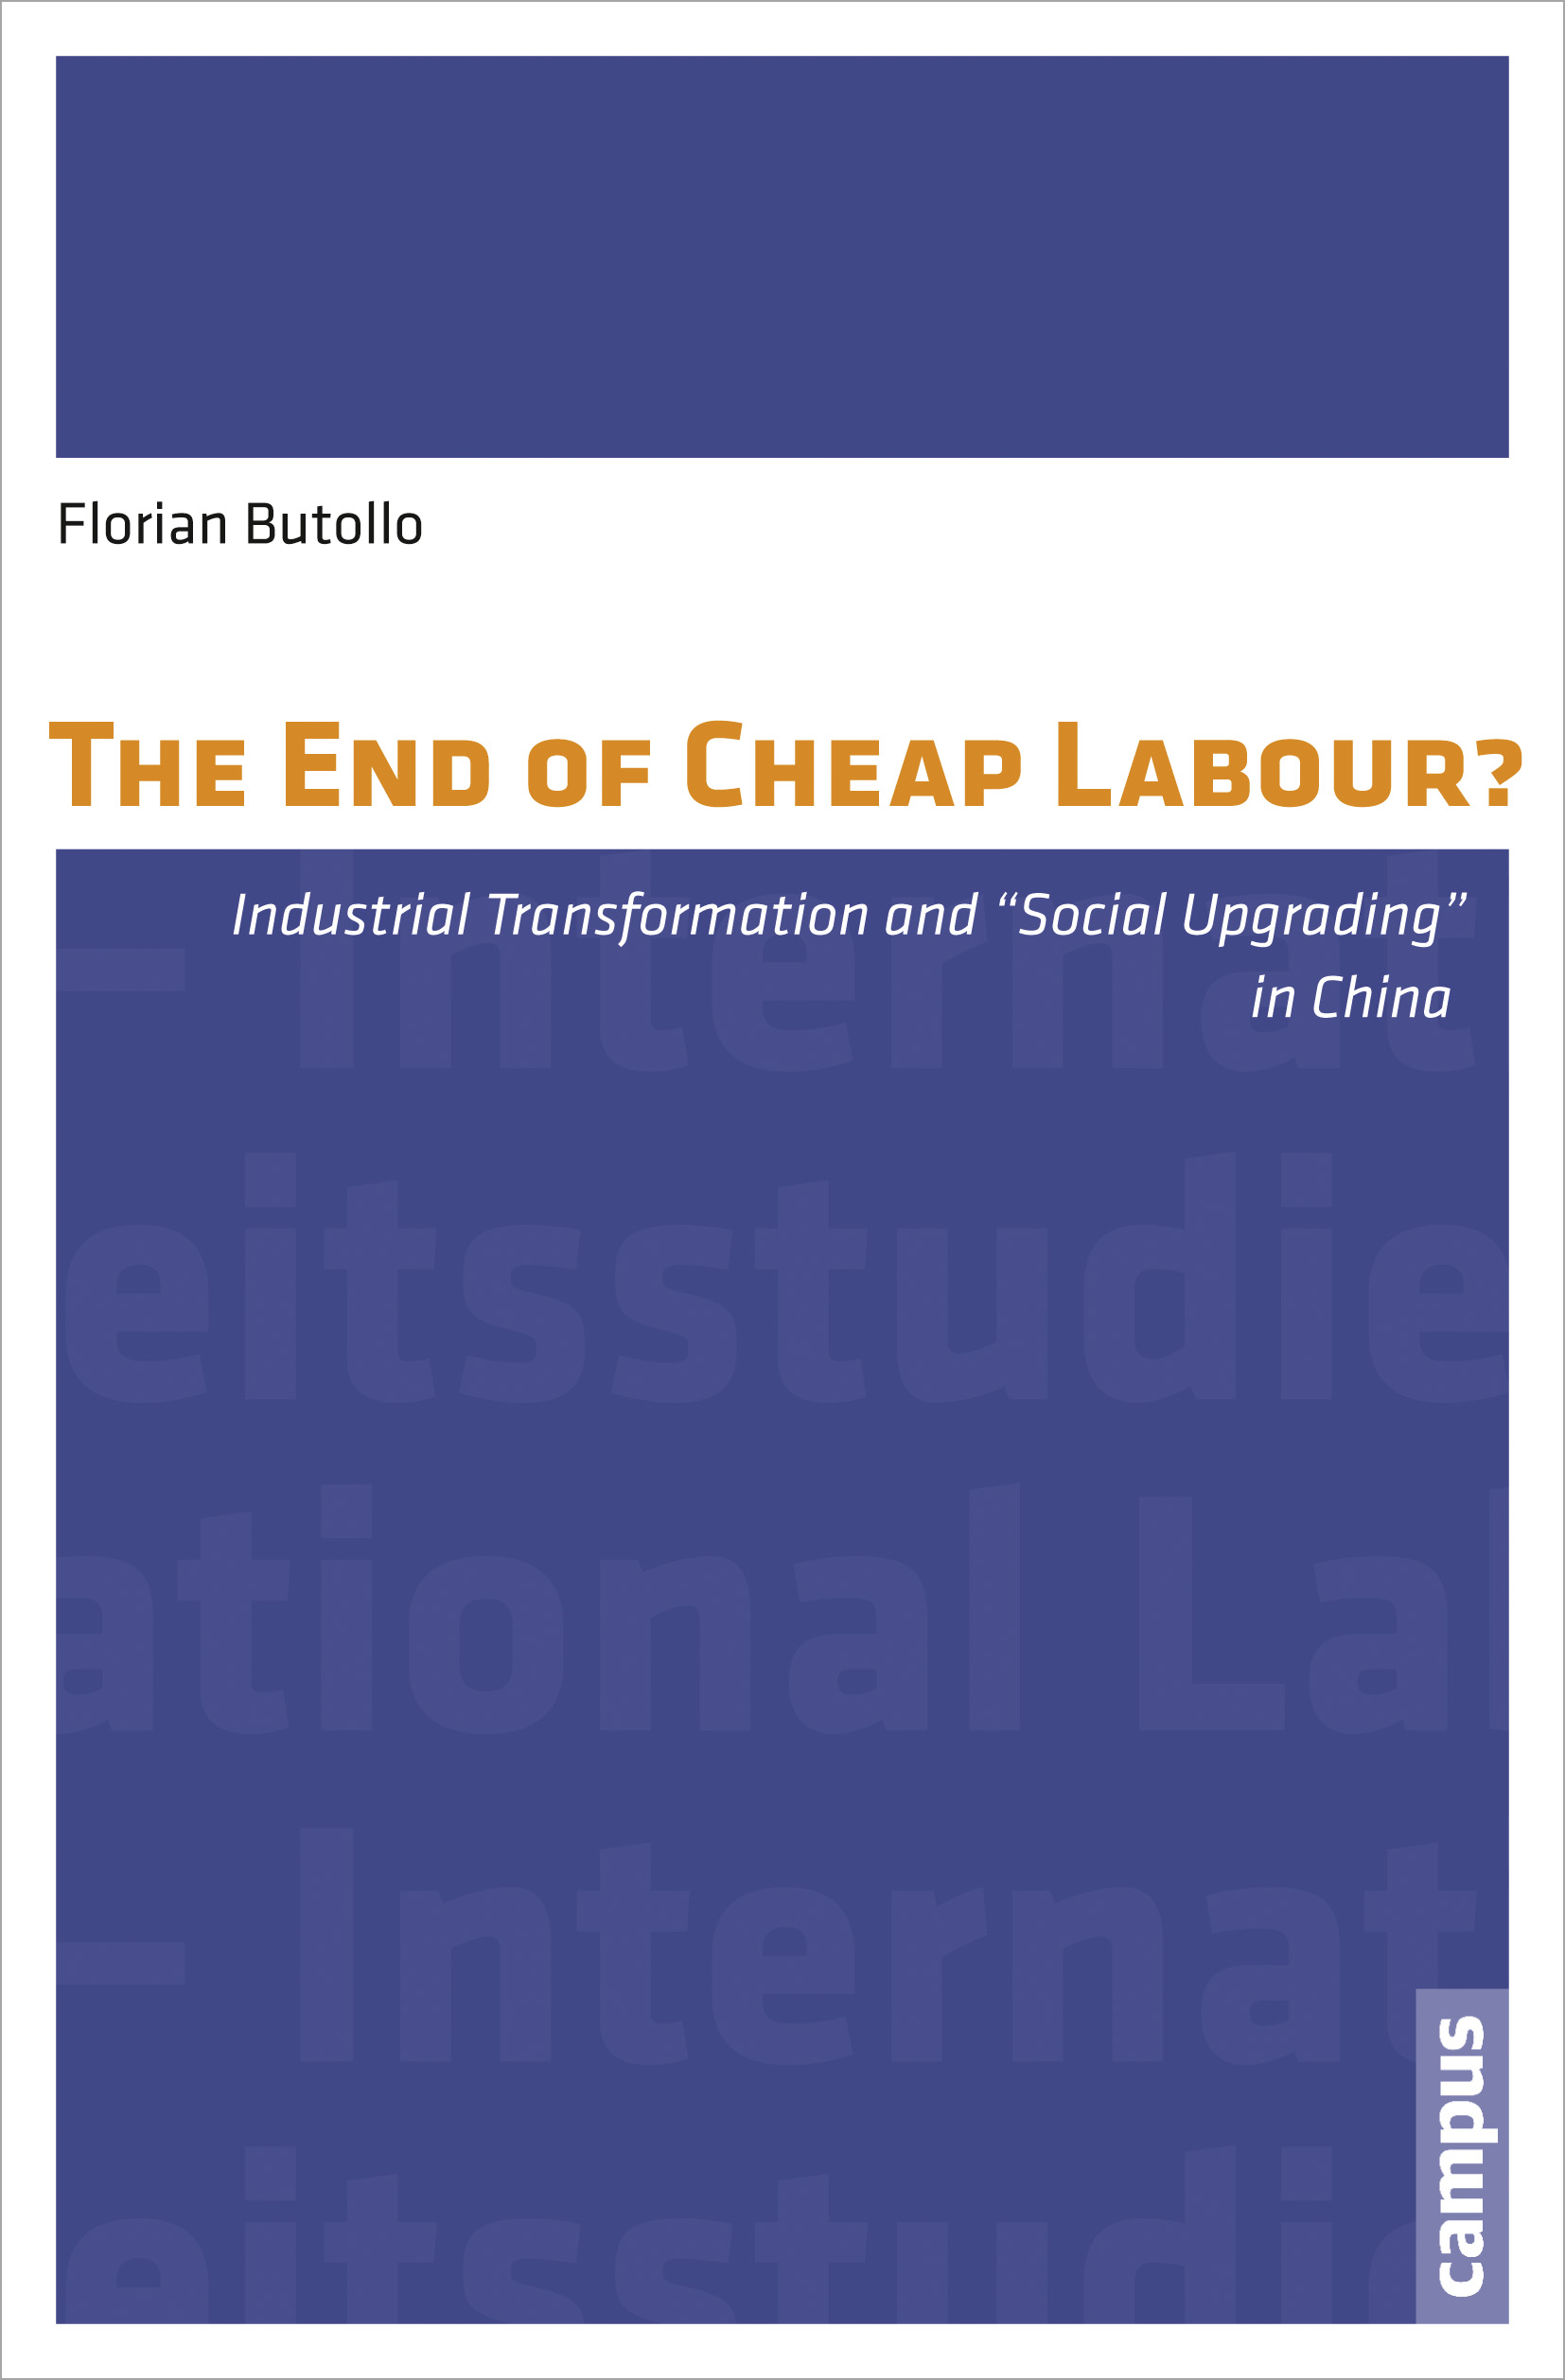 The-End-of-Cheap-Labour-Florian-Butollo